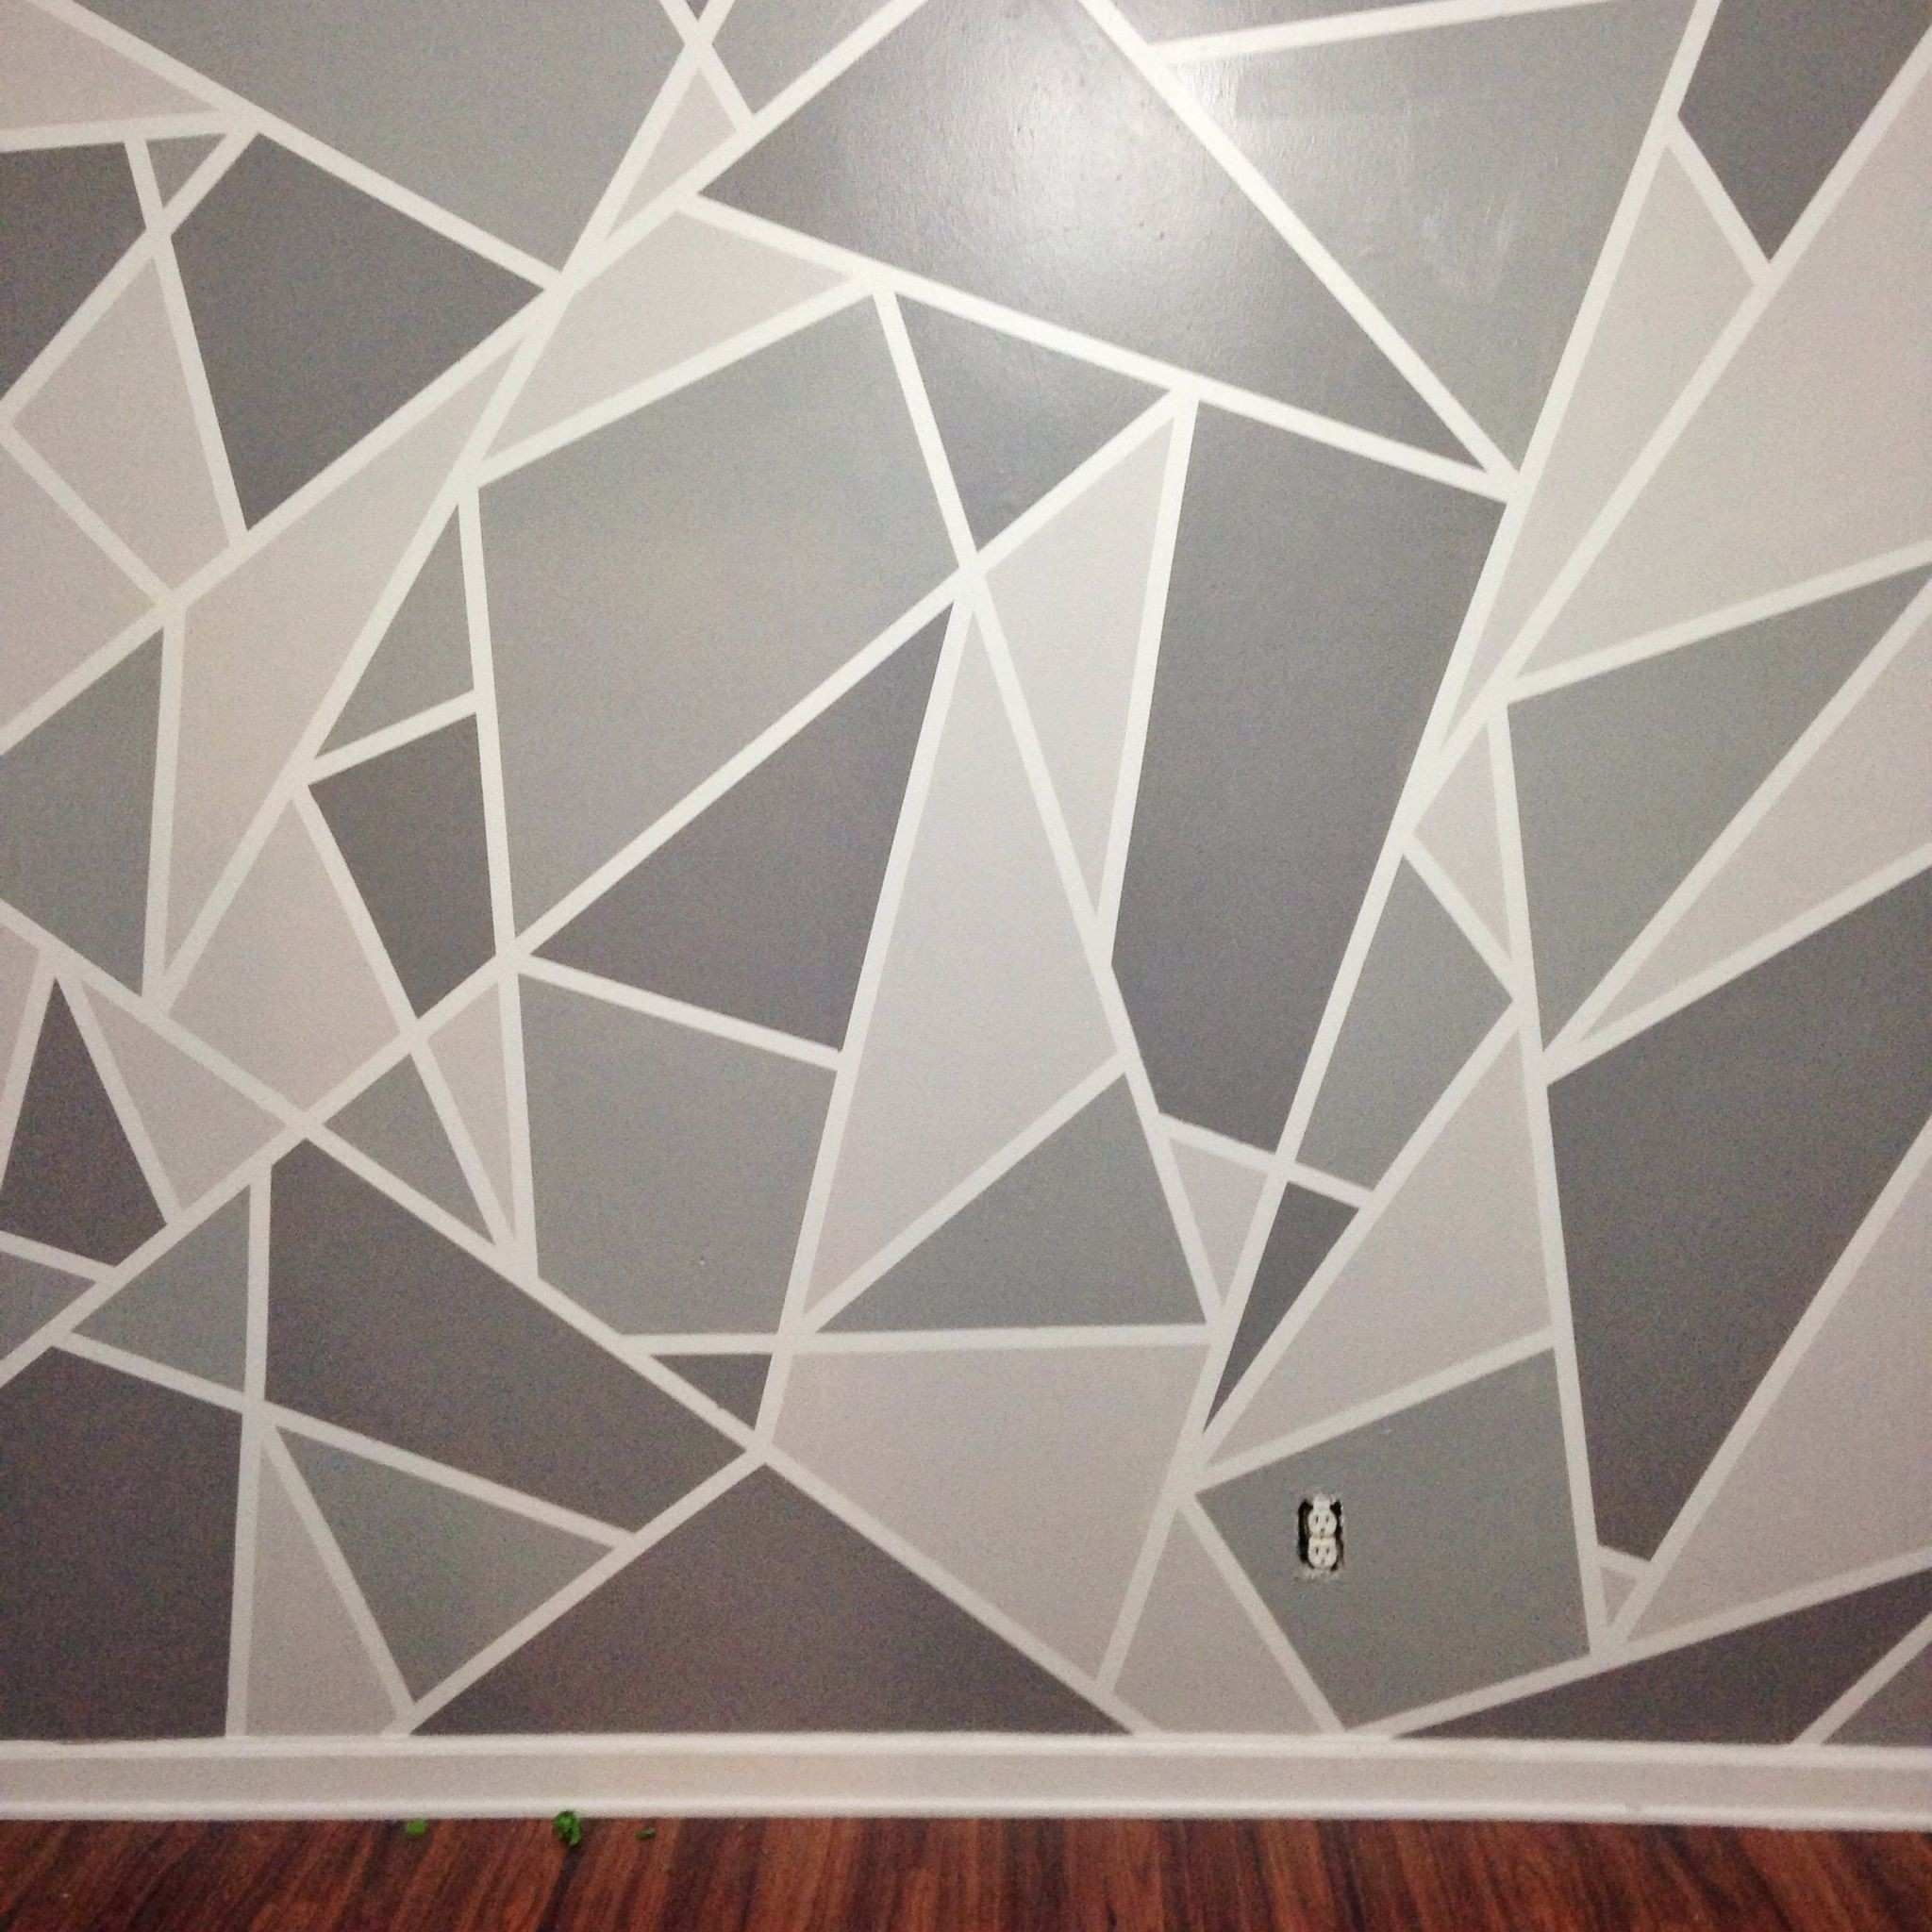 3 Dimensional Wall Art Lovely Diy Faux Wallpaper Accent Wall Regarding 3 Dimensional Wall Art (View 4 of 10)